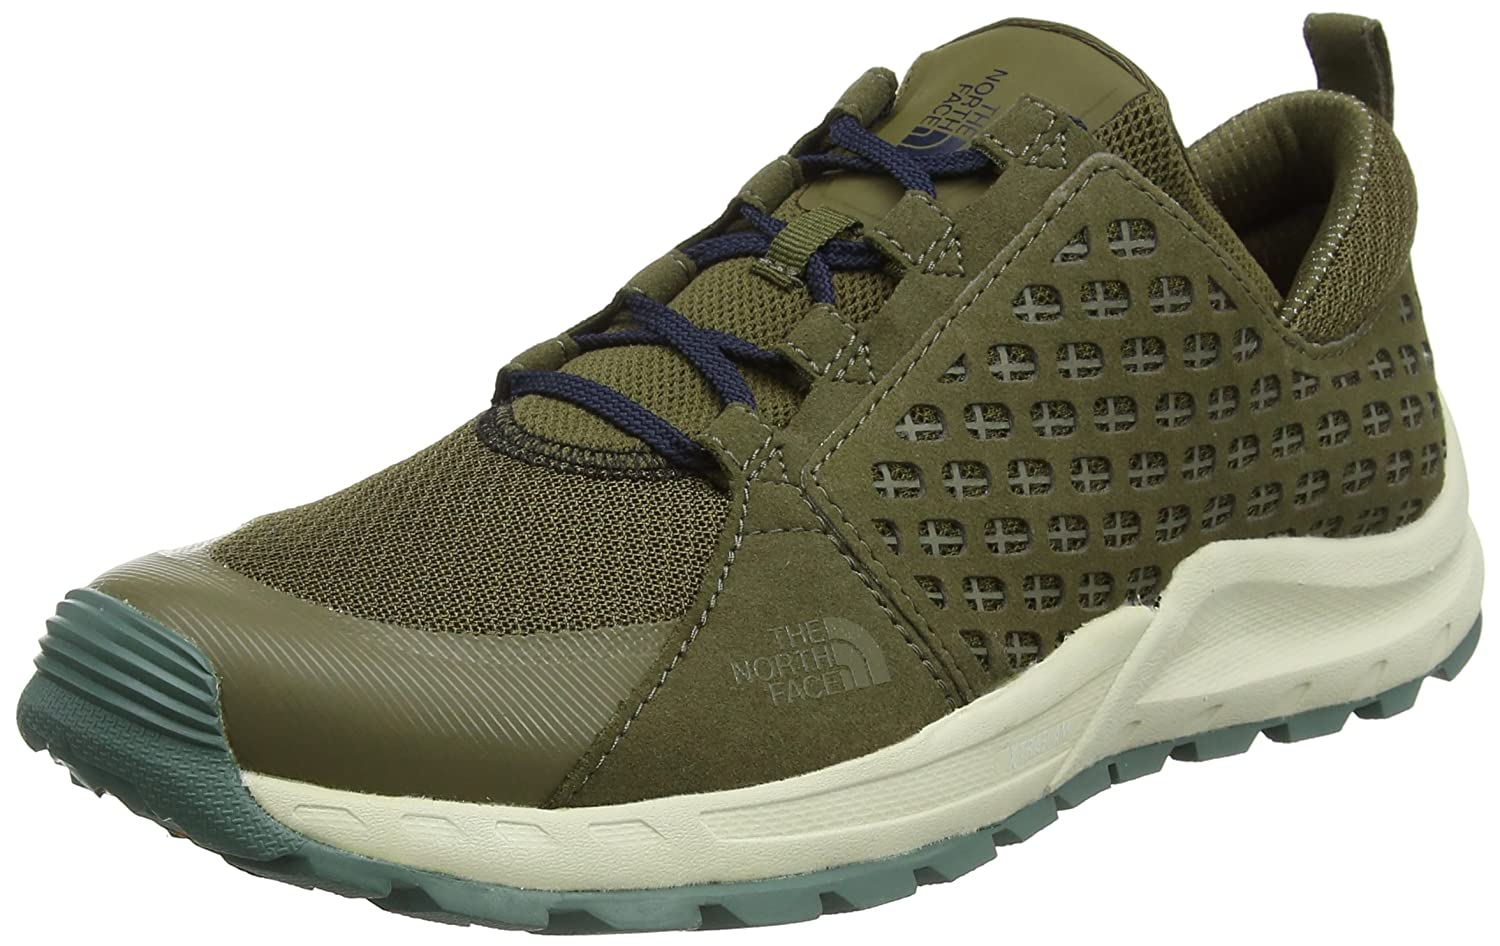 6661551c0 THE NORTH FACE Men's Mountain Sneaker Trail Running Shoes